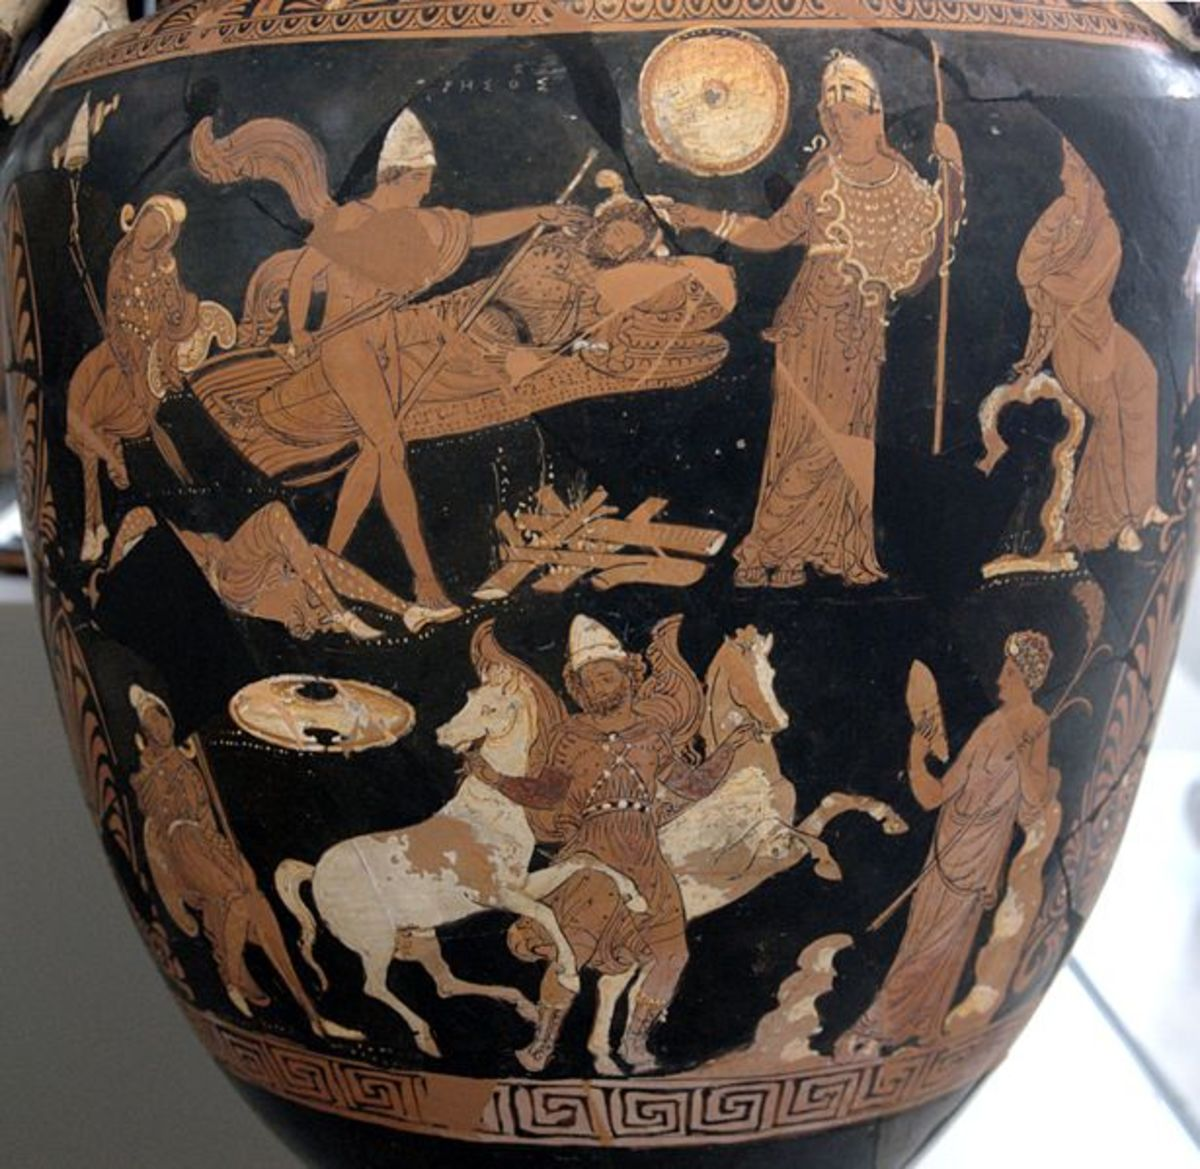 Athene offers support while Odysseus and Diomedes steal the horses of Rhesus.